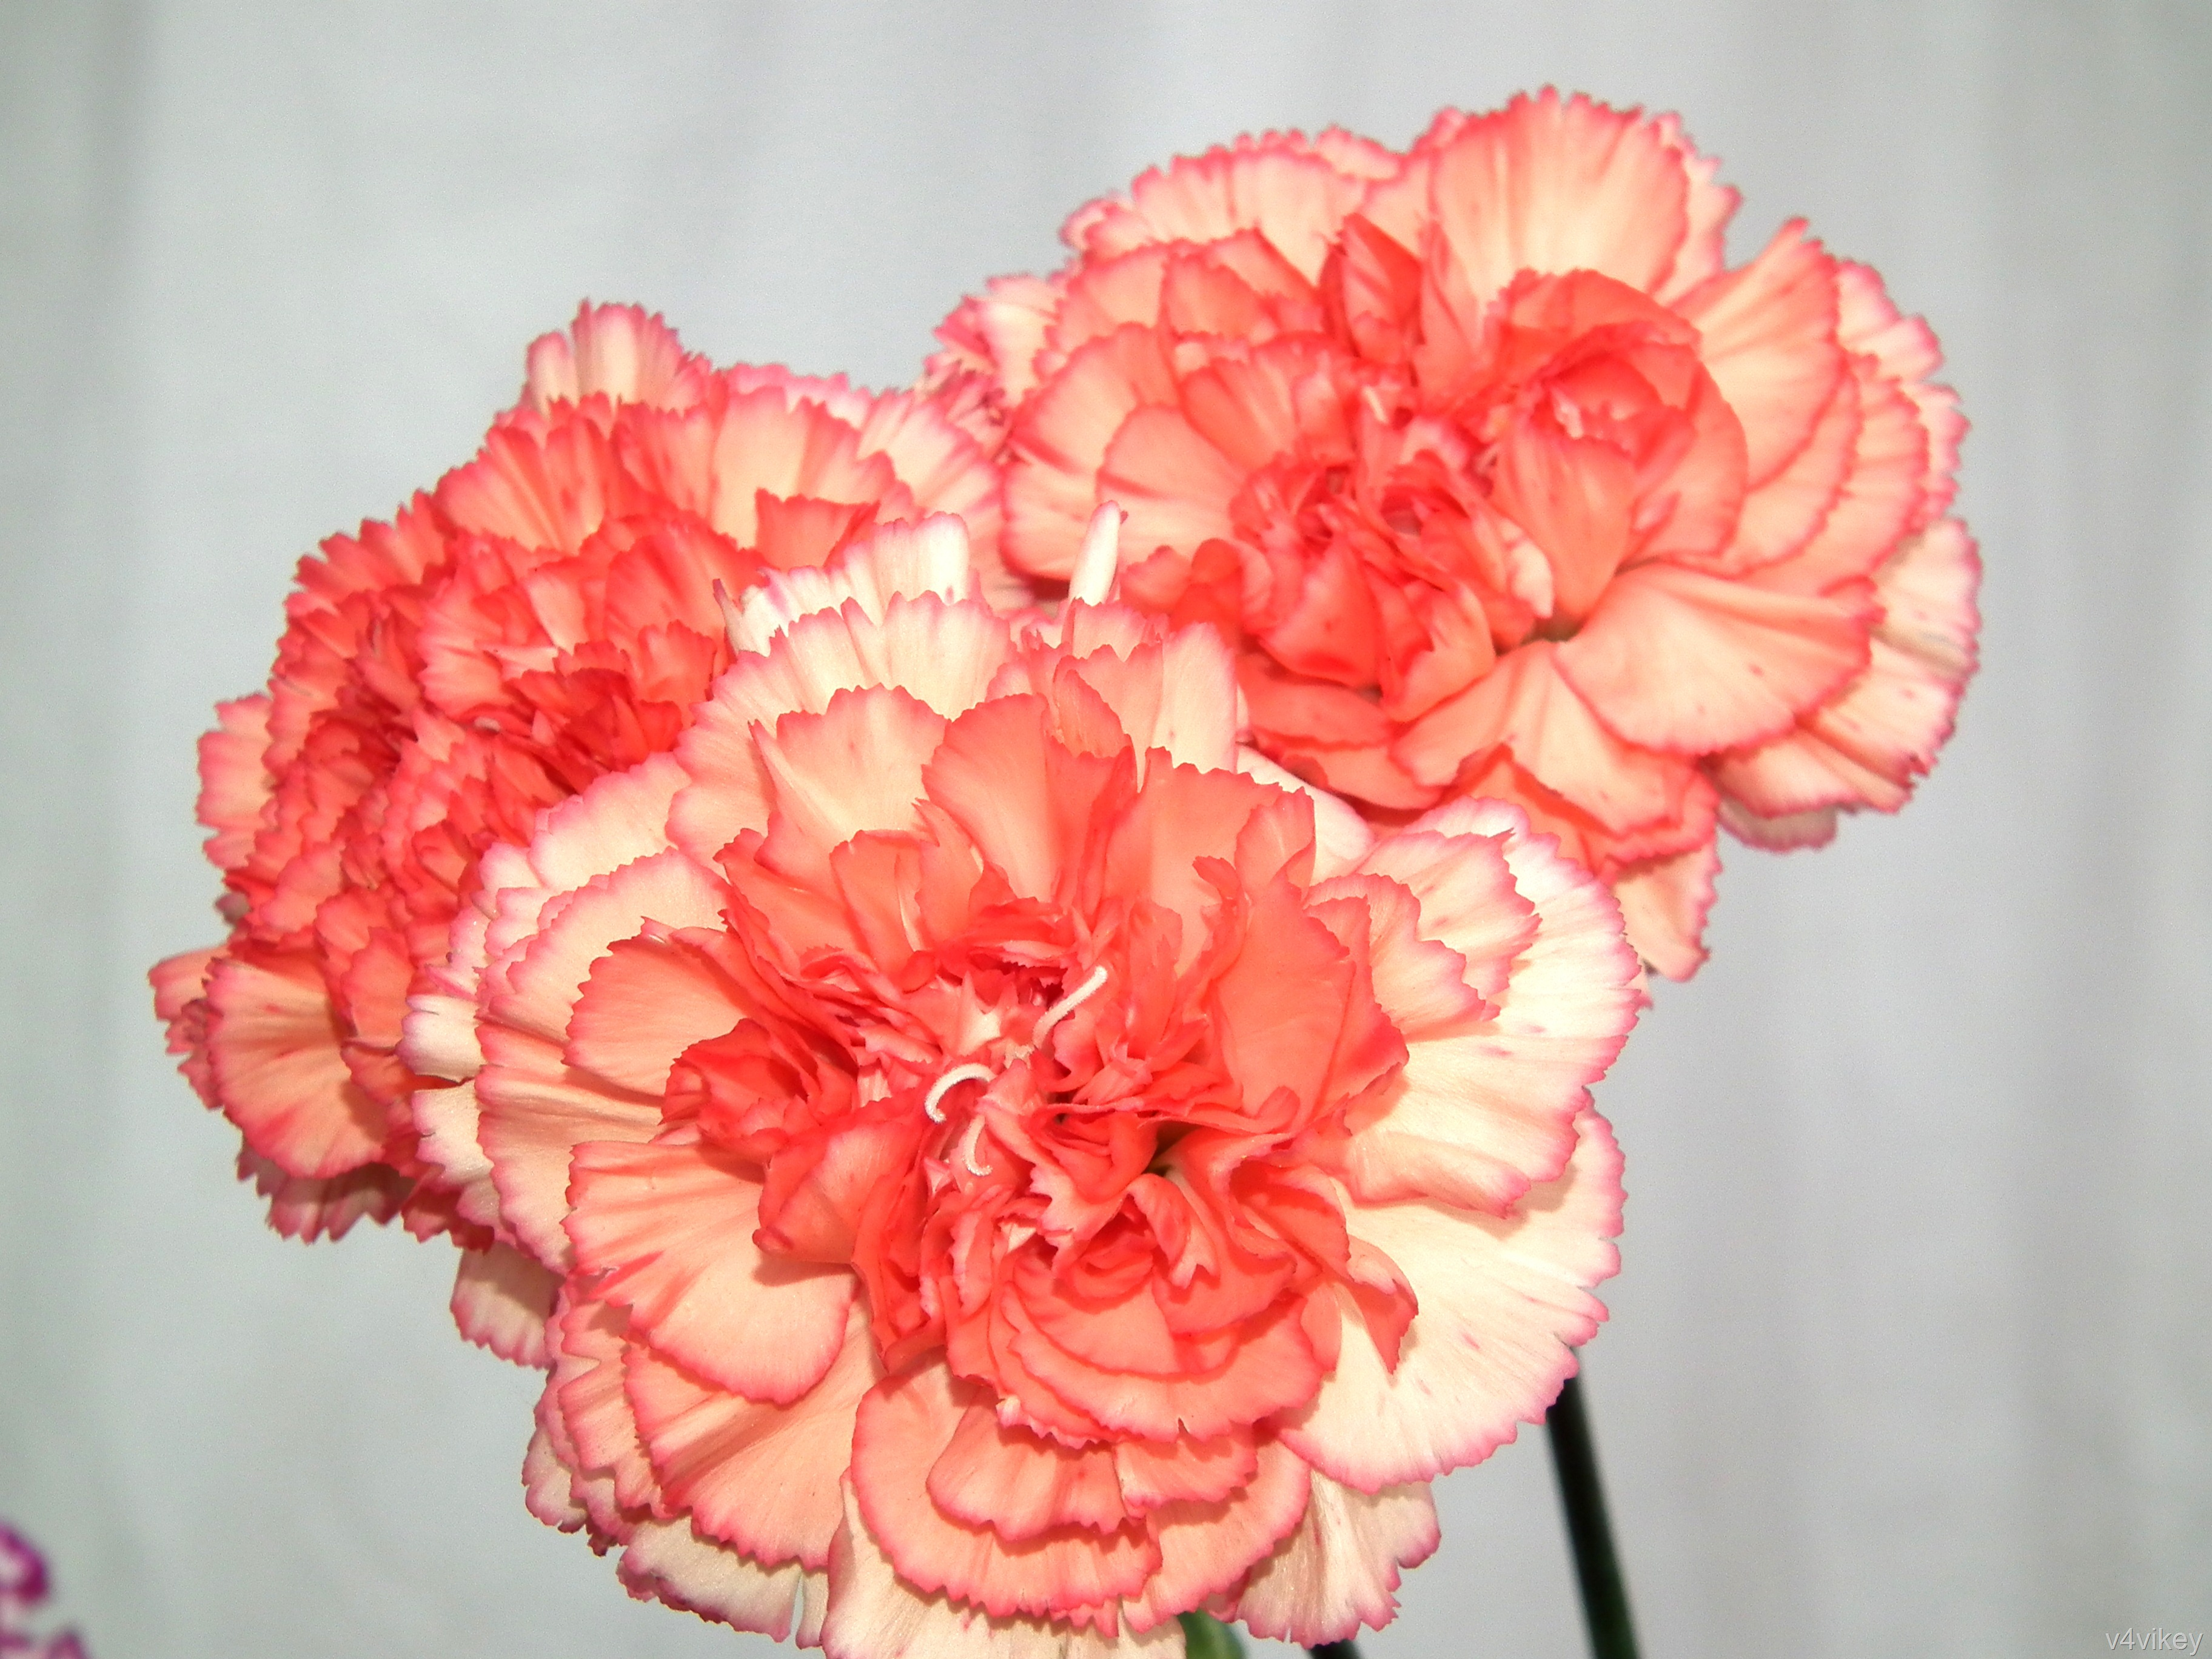 Peach Color Carnation Flowers « Wallpaper Tadka